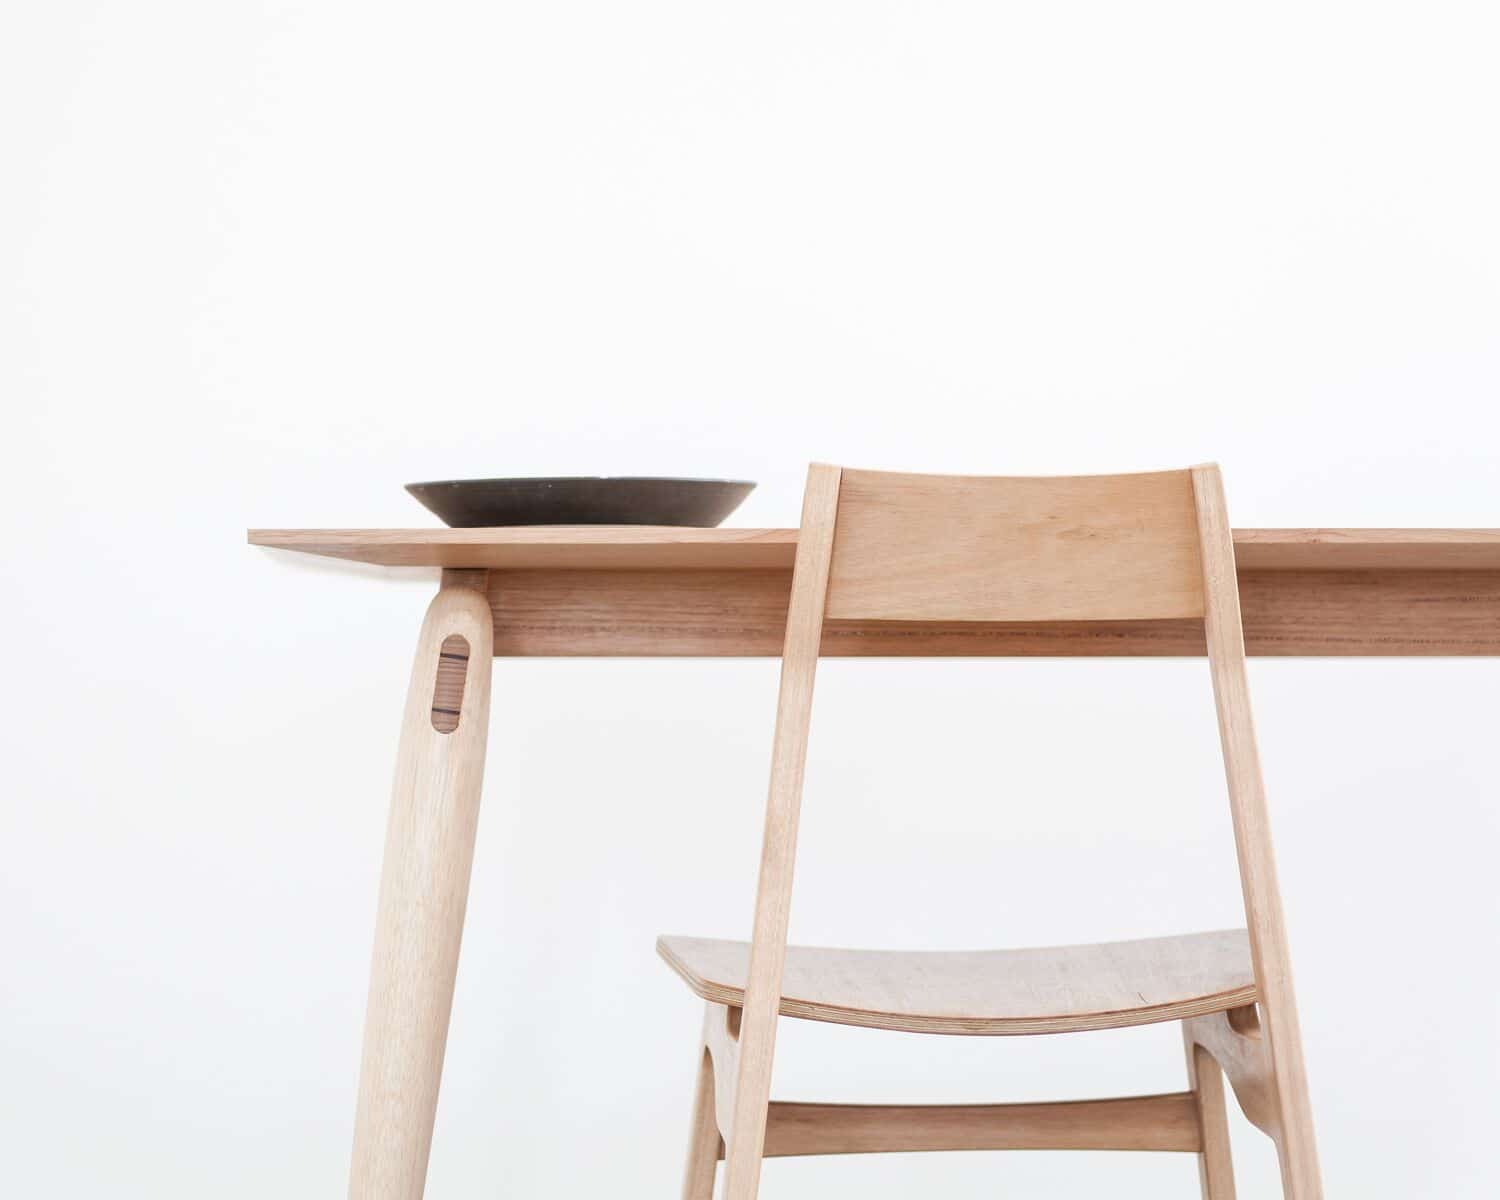 Fred Table & Flea Chair by Adam Markowitz, Photography Ben Clement